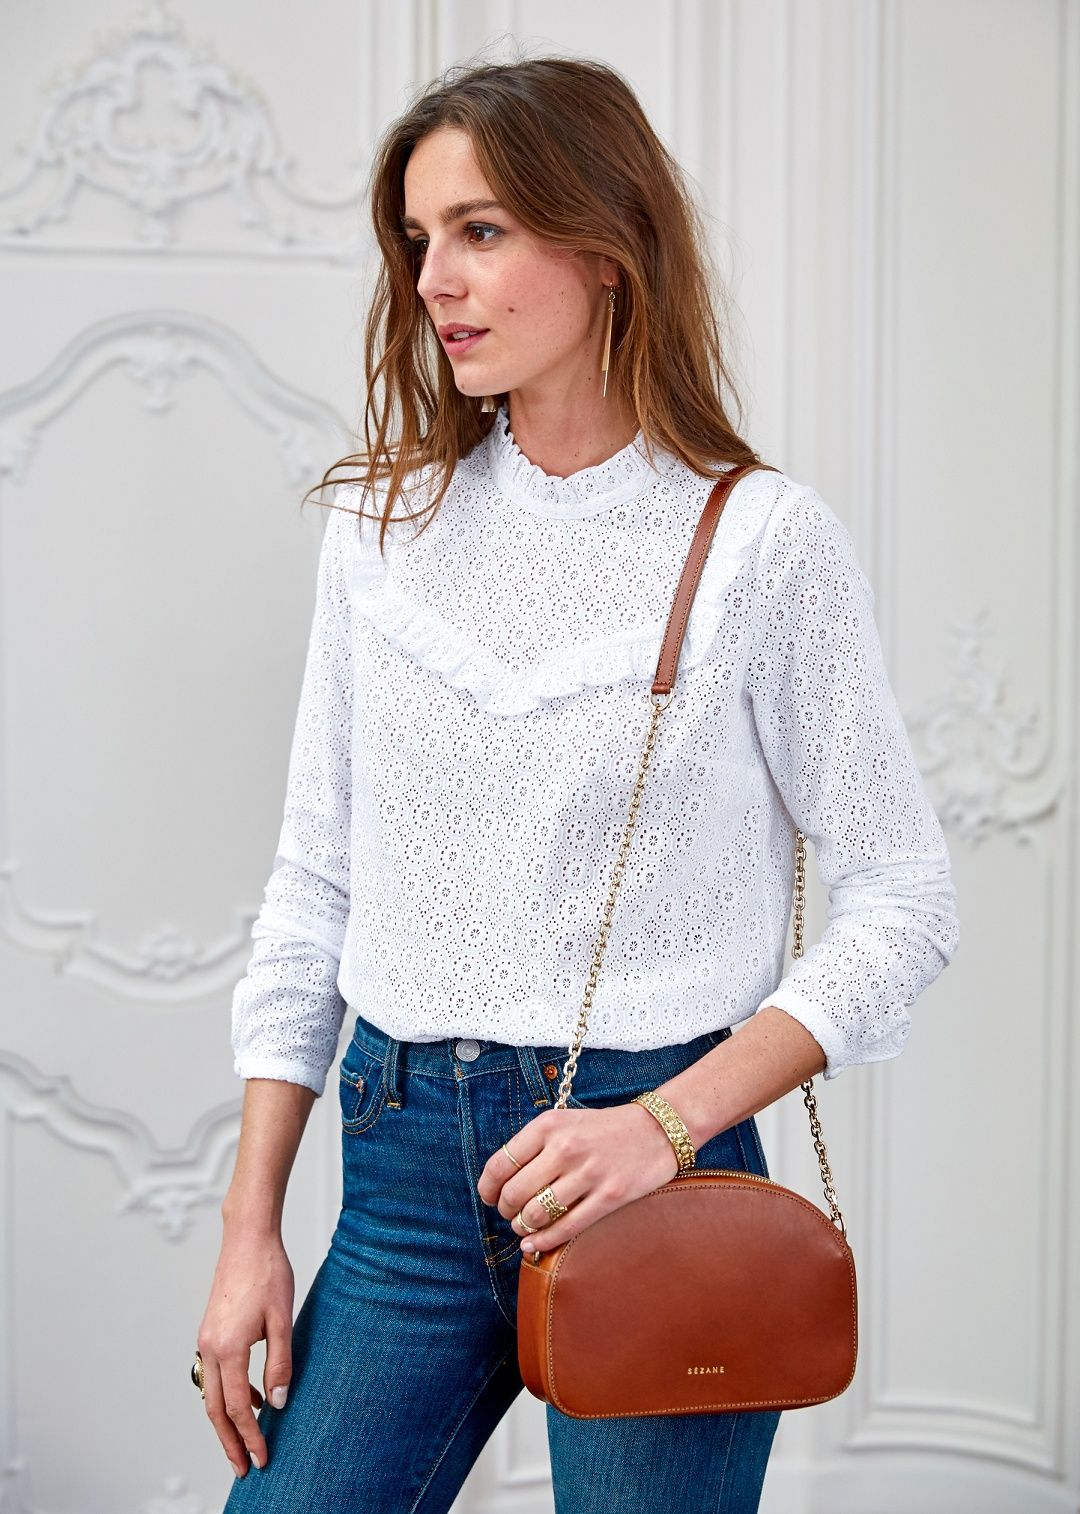 784a67c03bef28 French brand Sezane launched their winter collection online an hour ago and  several pieces have already sold out. In true Parisian fashion, the designs  are ...